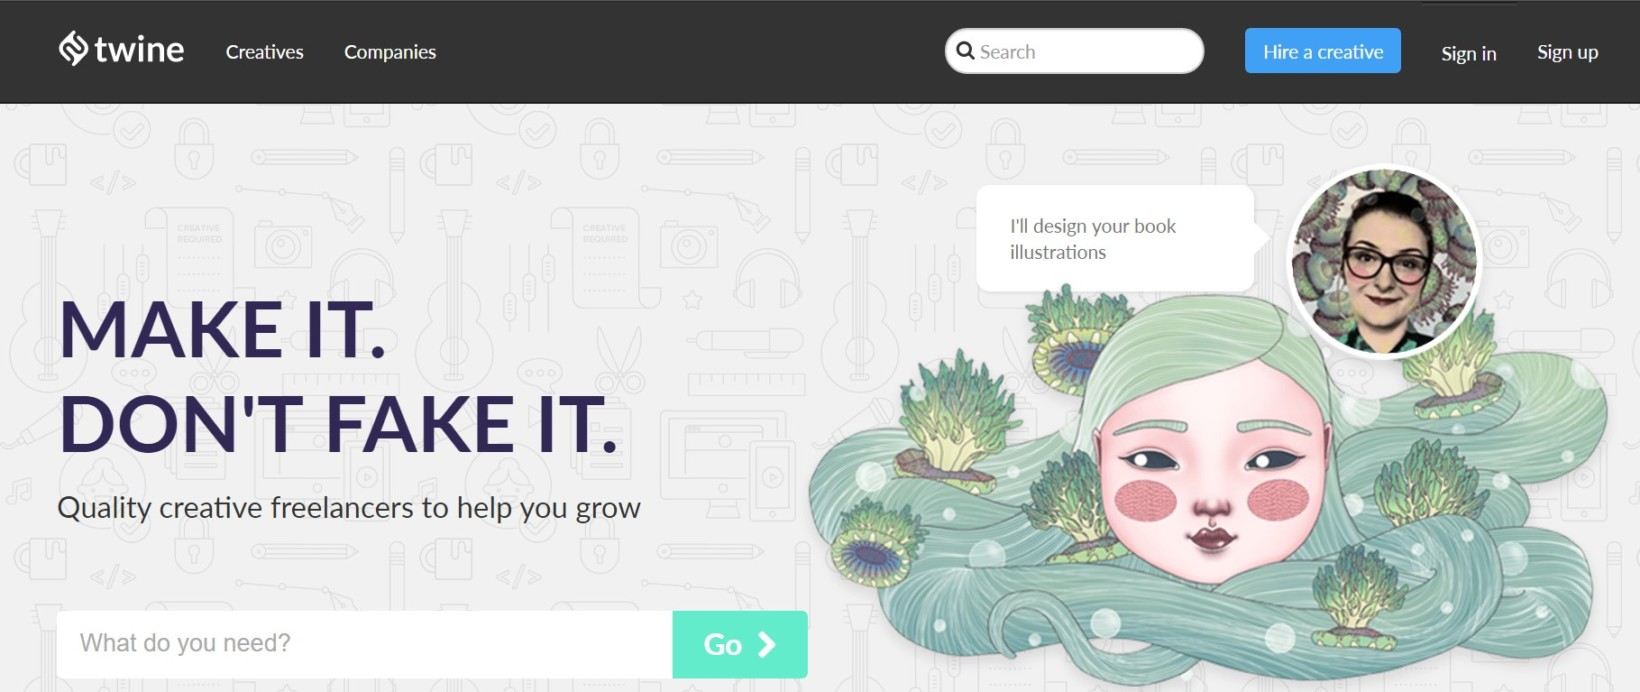 Twine is the anti-Fiverr for creative professionals